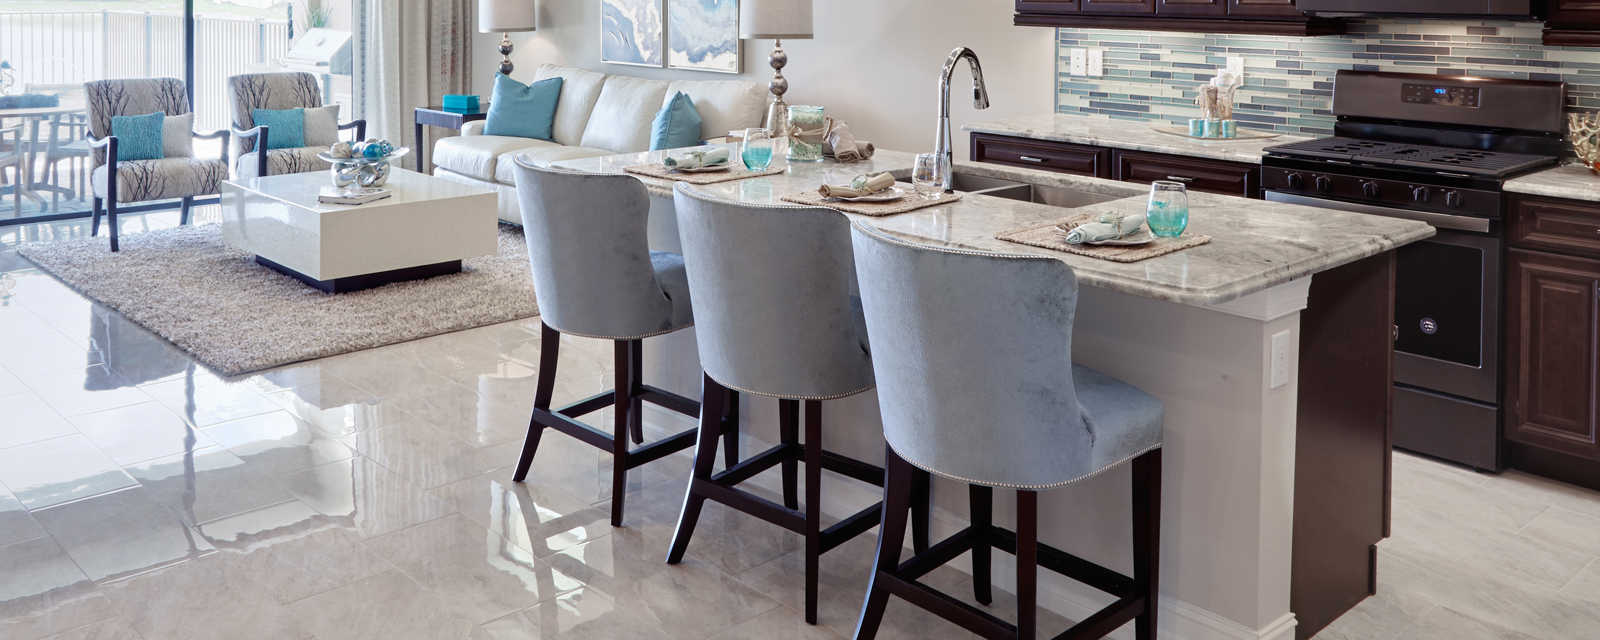 dining room bar stools blogs workanyware co uk u2022 rh blogs workanyware co uk